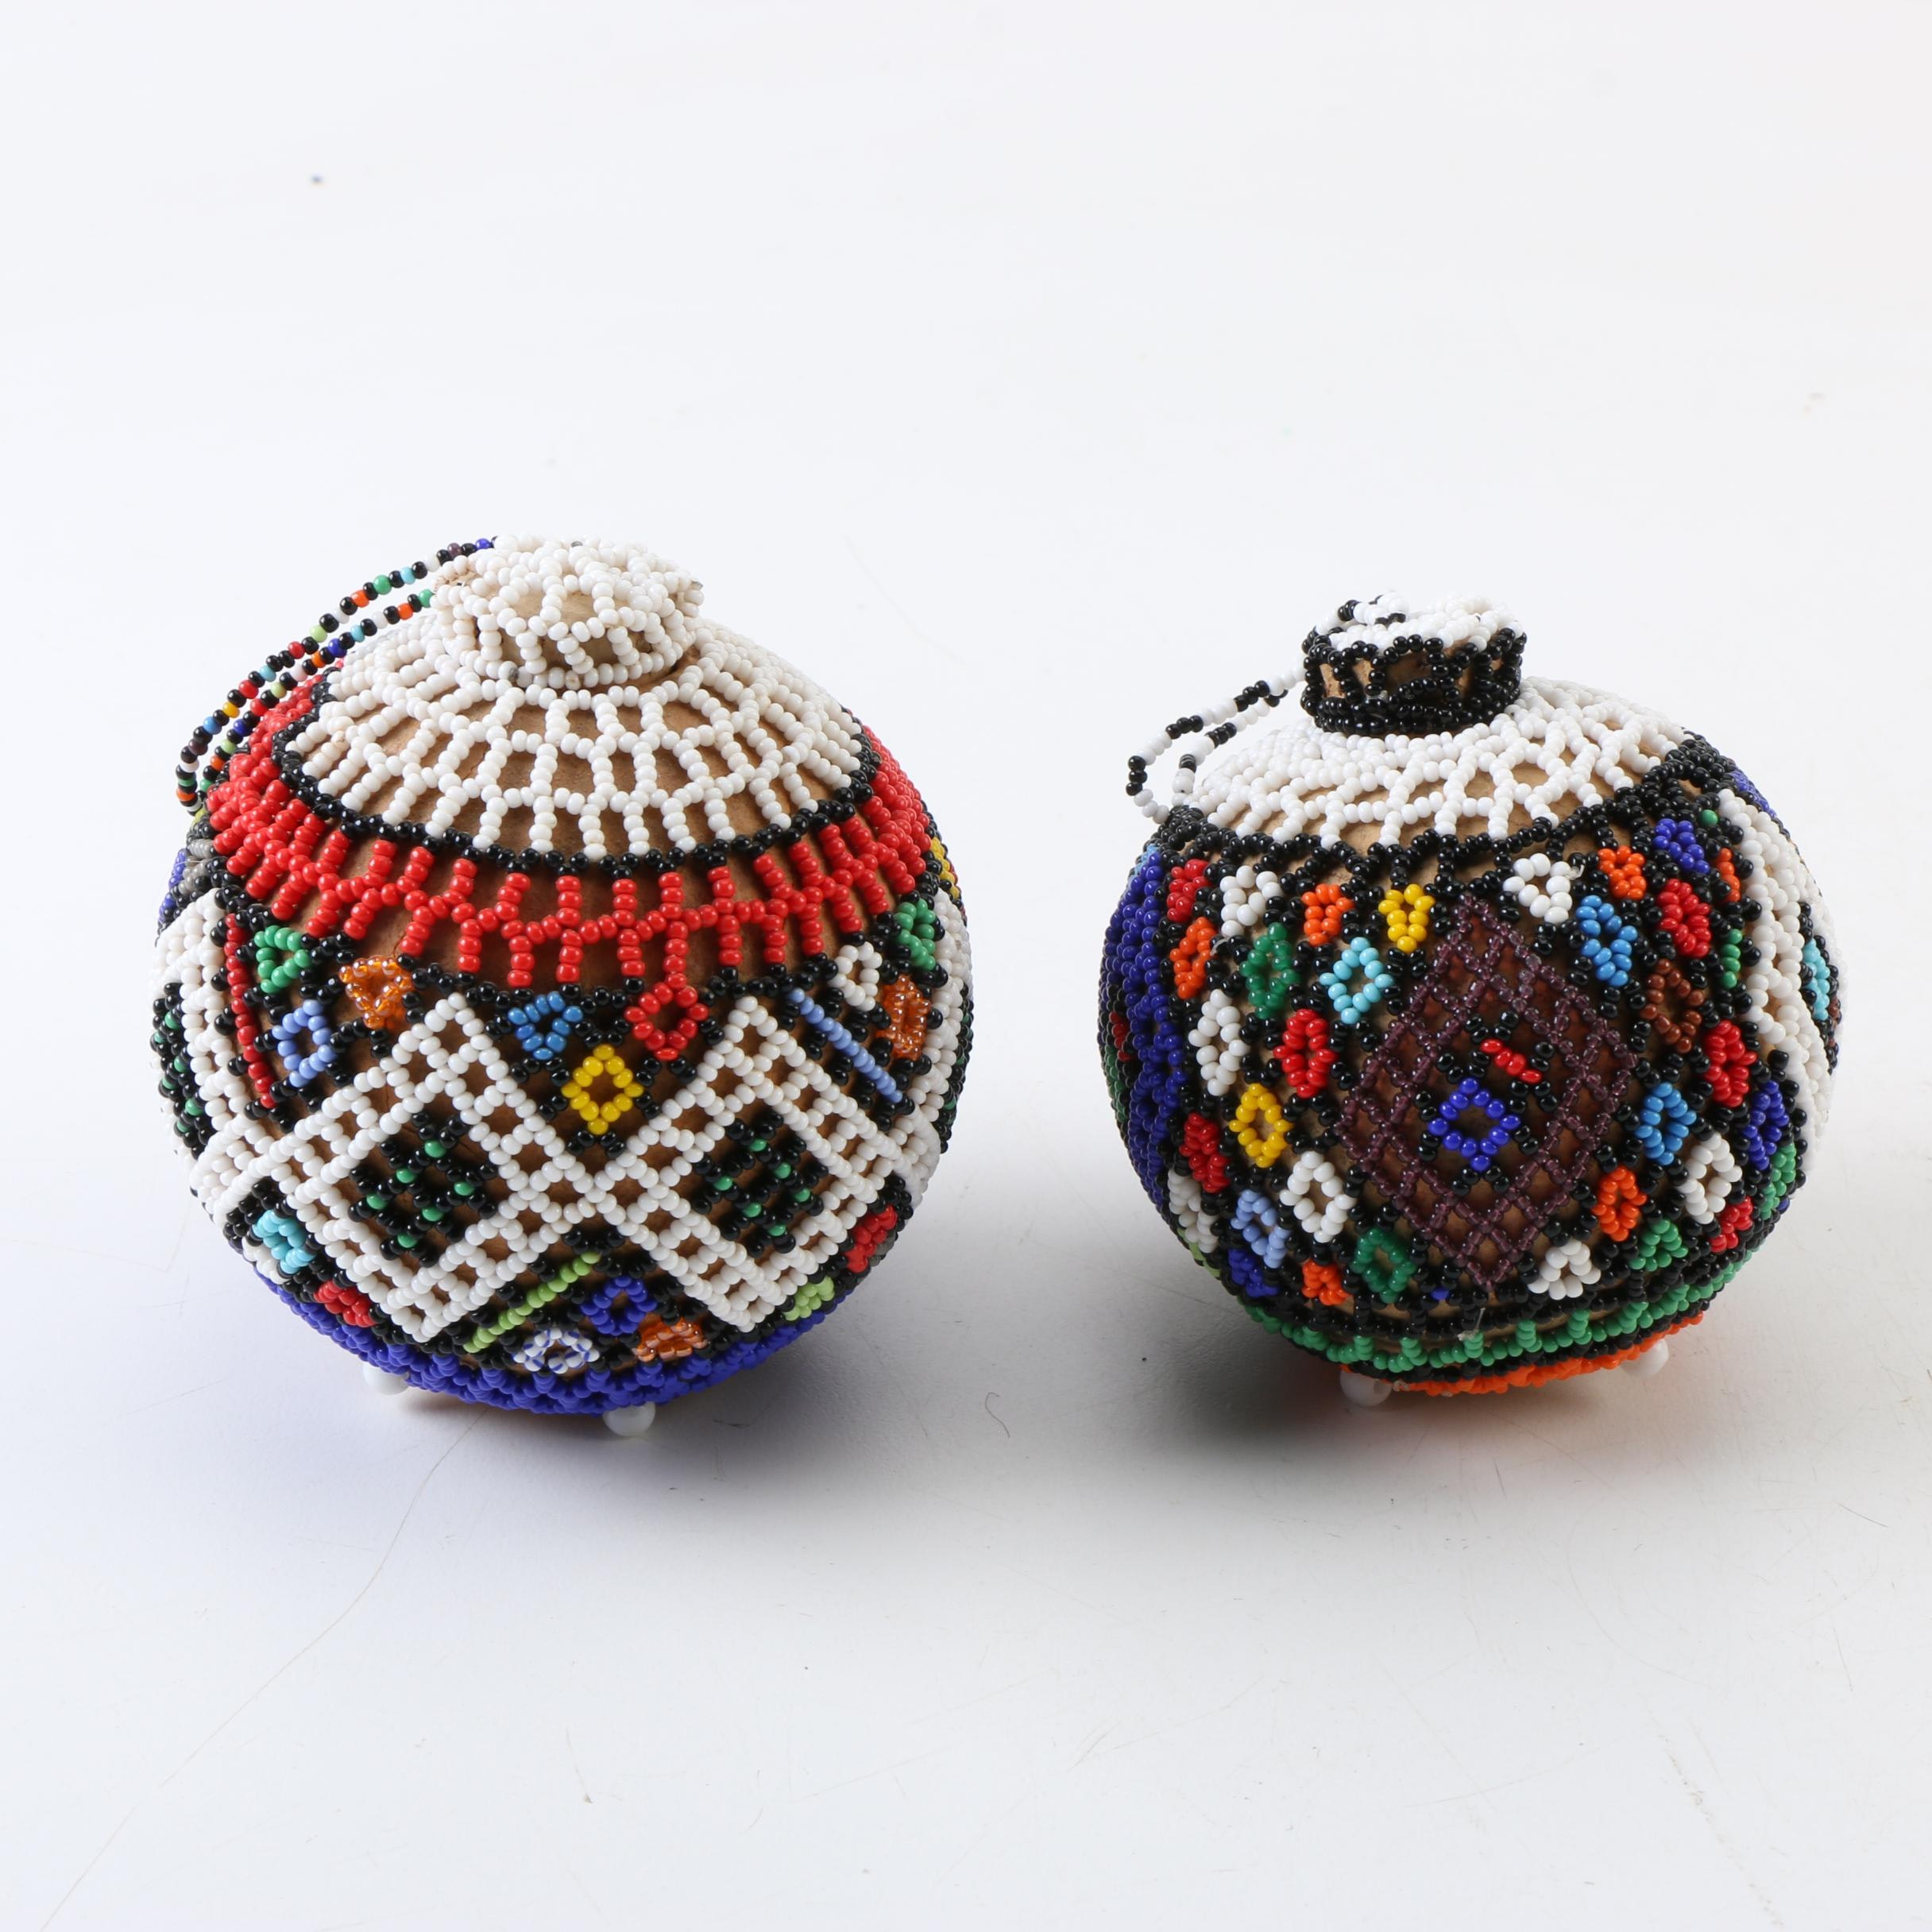 Southern African Beaded Gourd Bottles